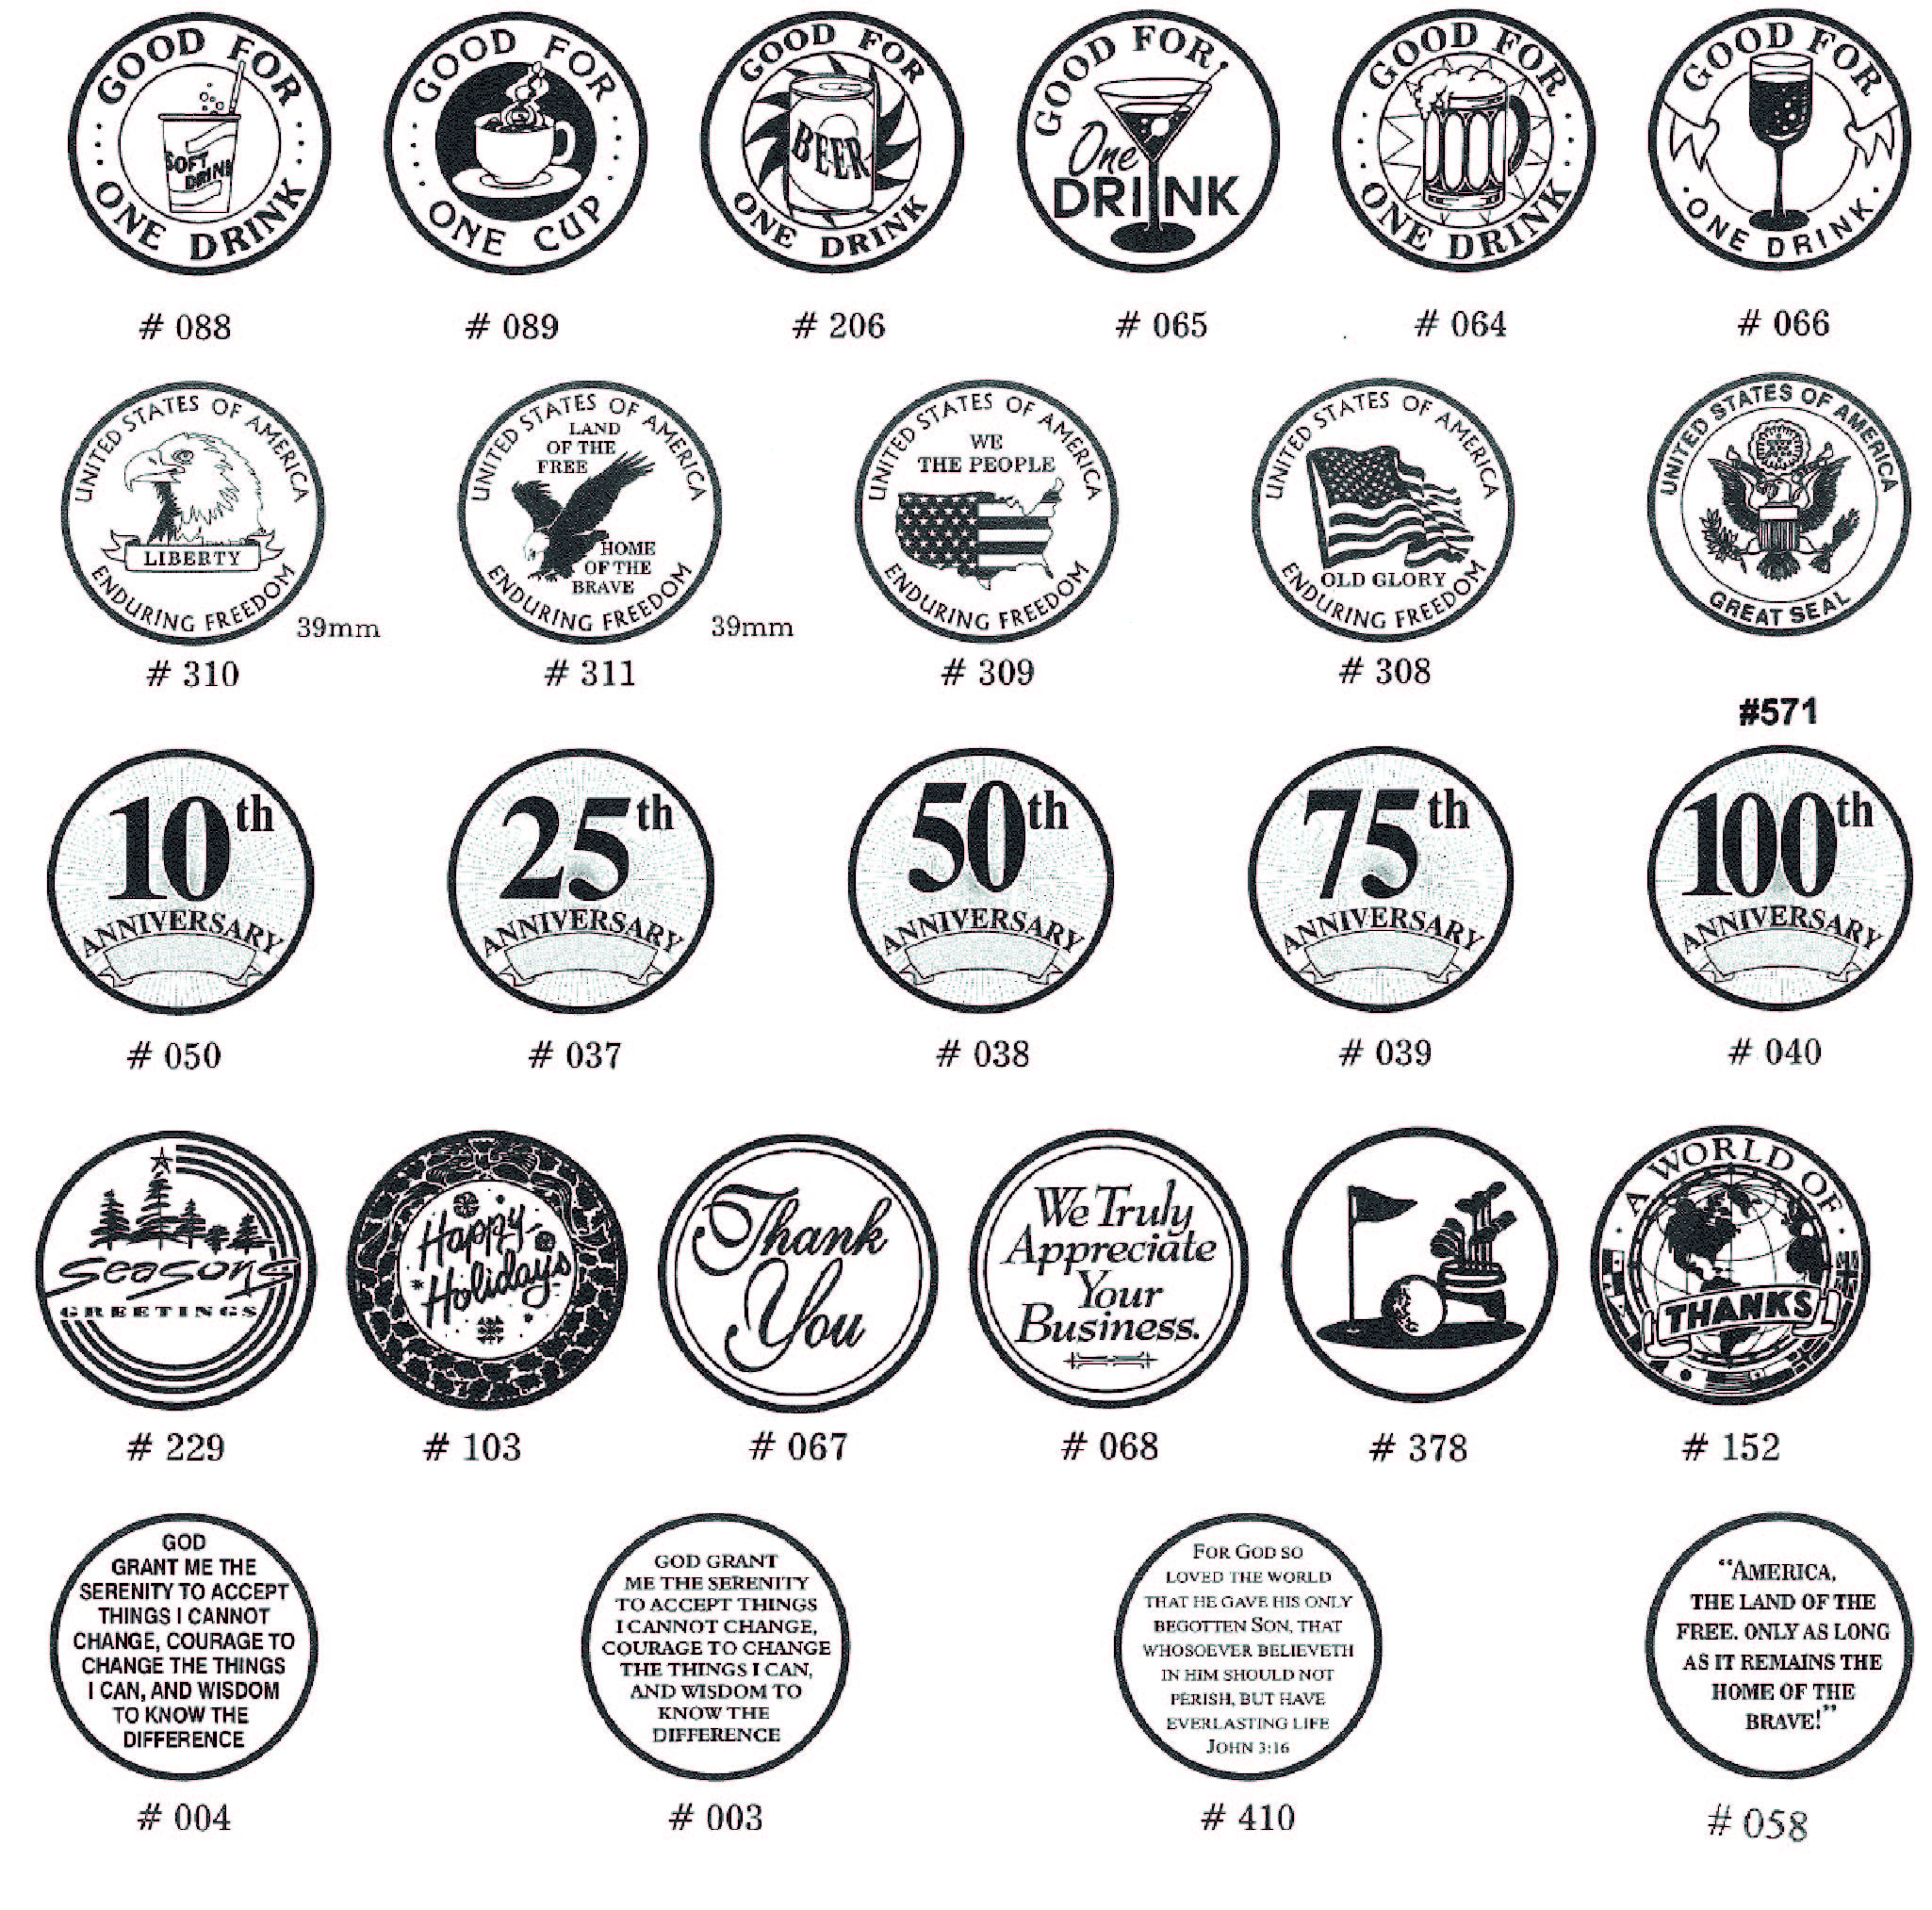 http://files.b-token.us/files/378/original/Aluminium tokens standard designs.jpg?1568274047